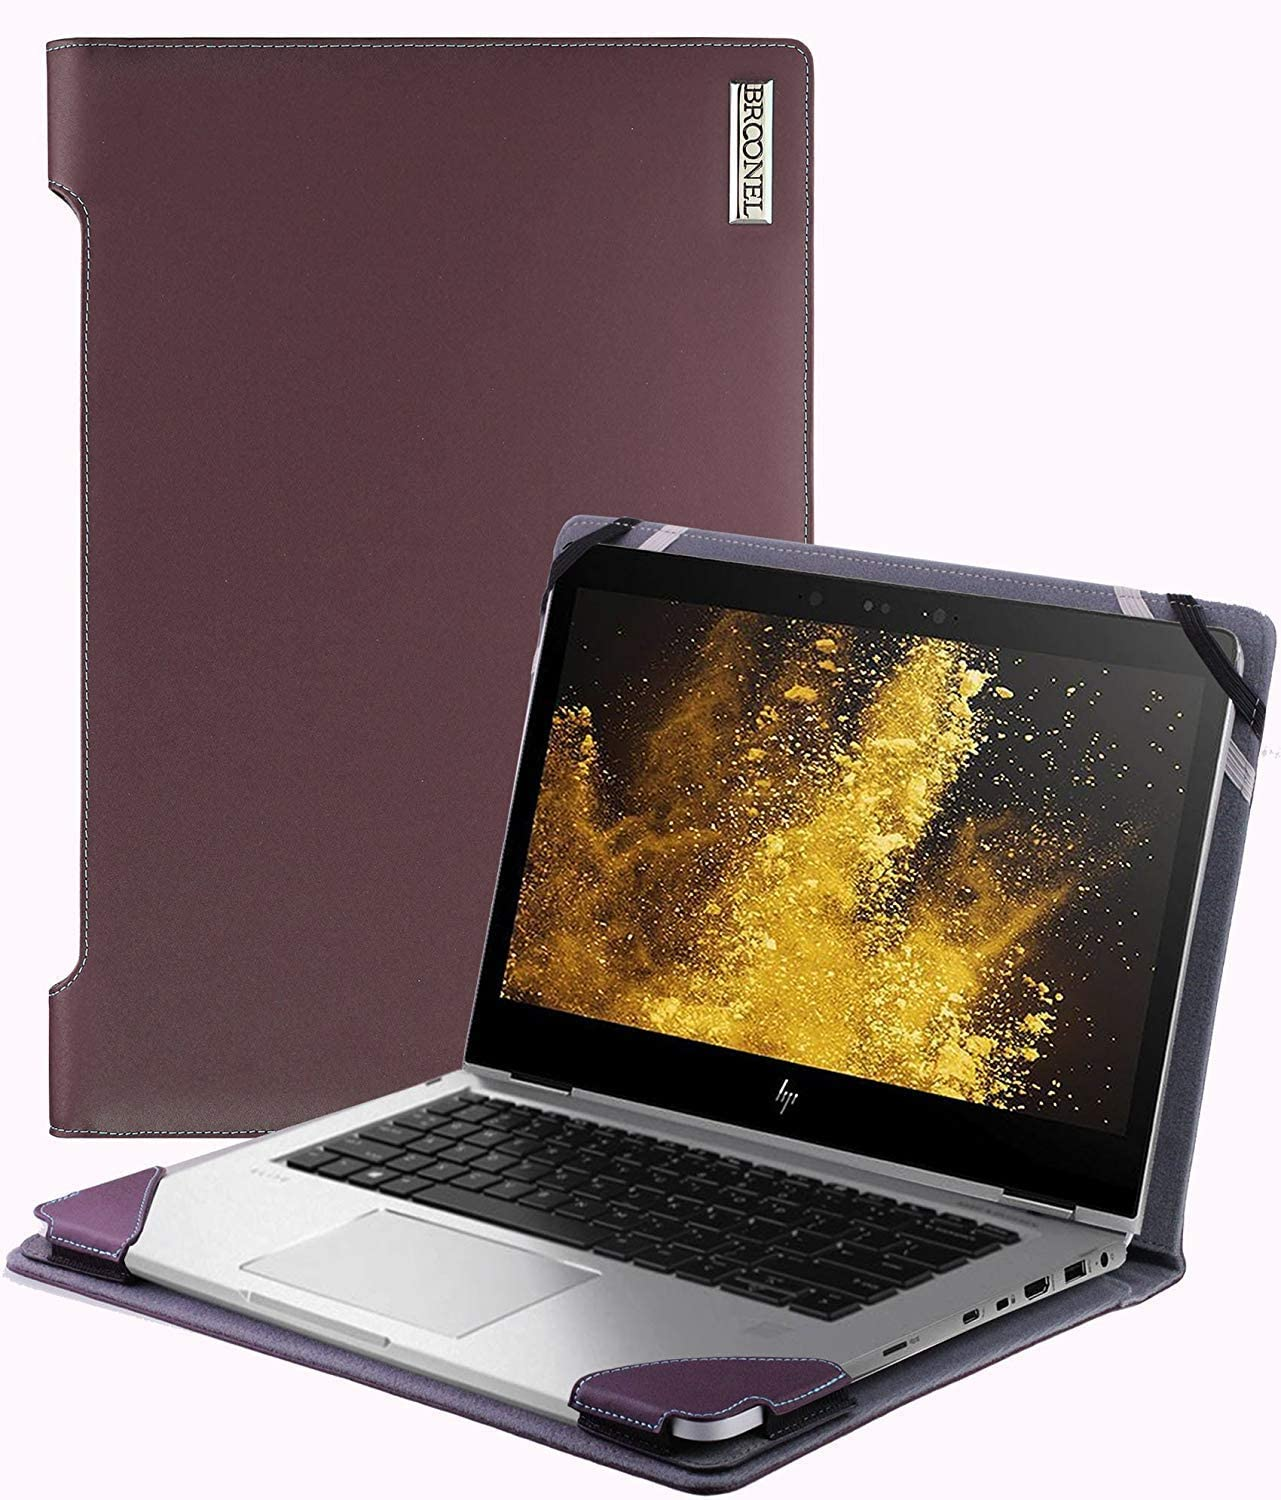 Broonel - Profile Series - Purple Leather Laptop Case Compatible with The HP Pavilion 13-an0029nf Ultraportable PC 13.3 ''